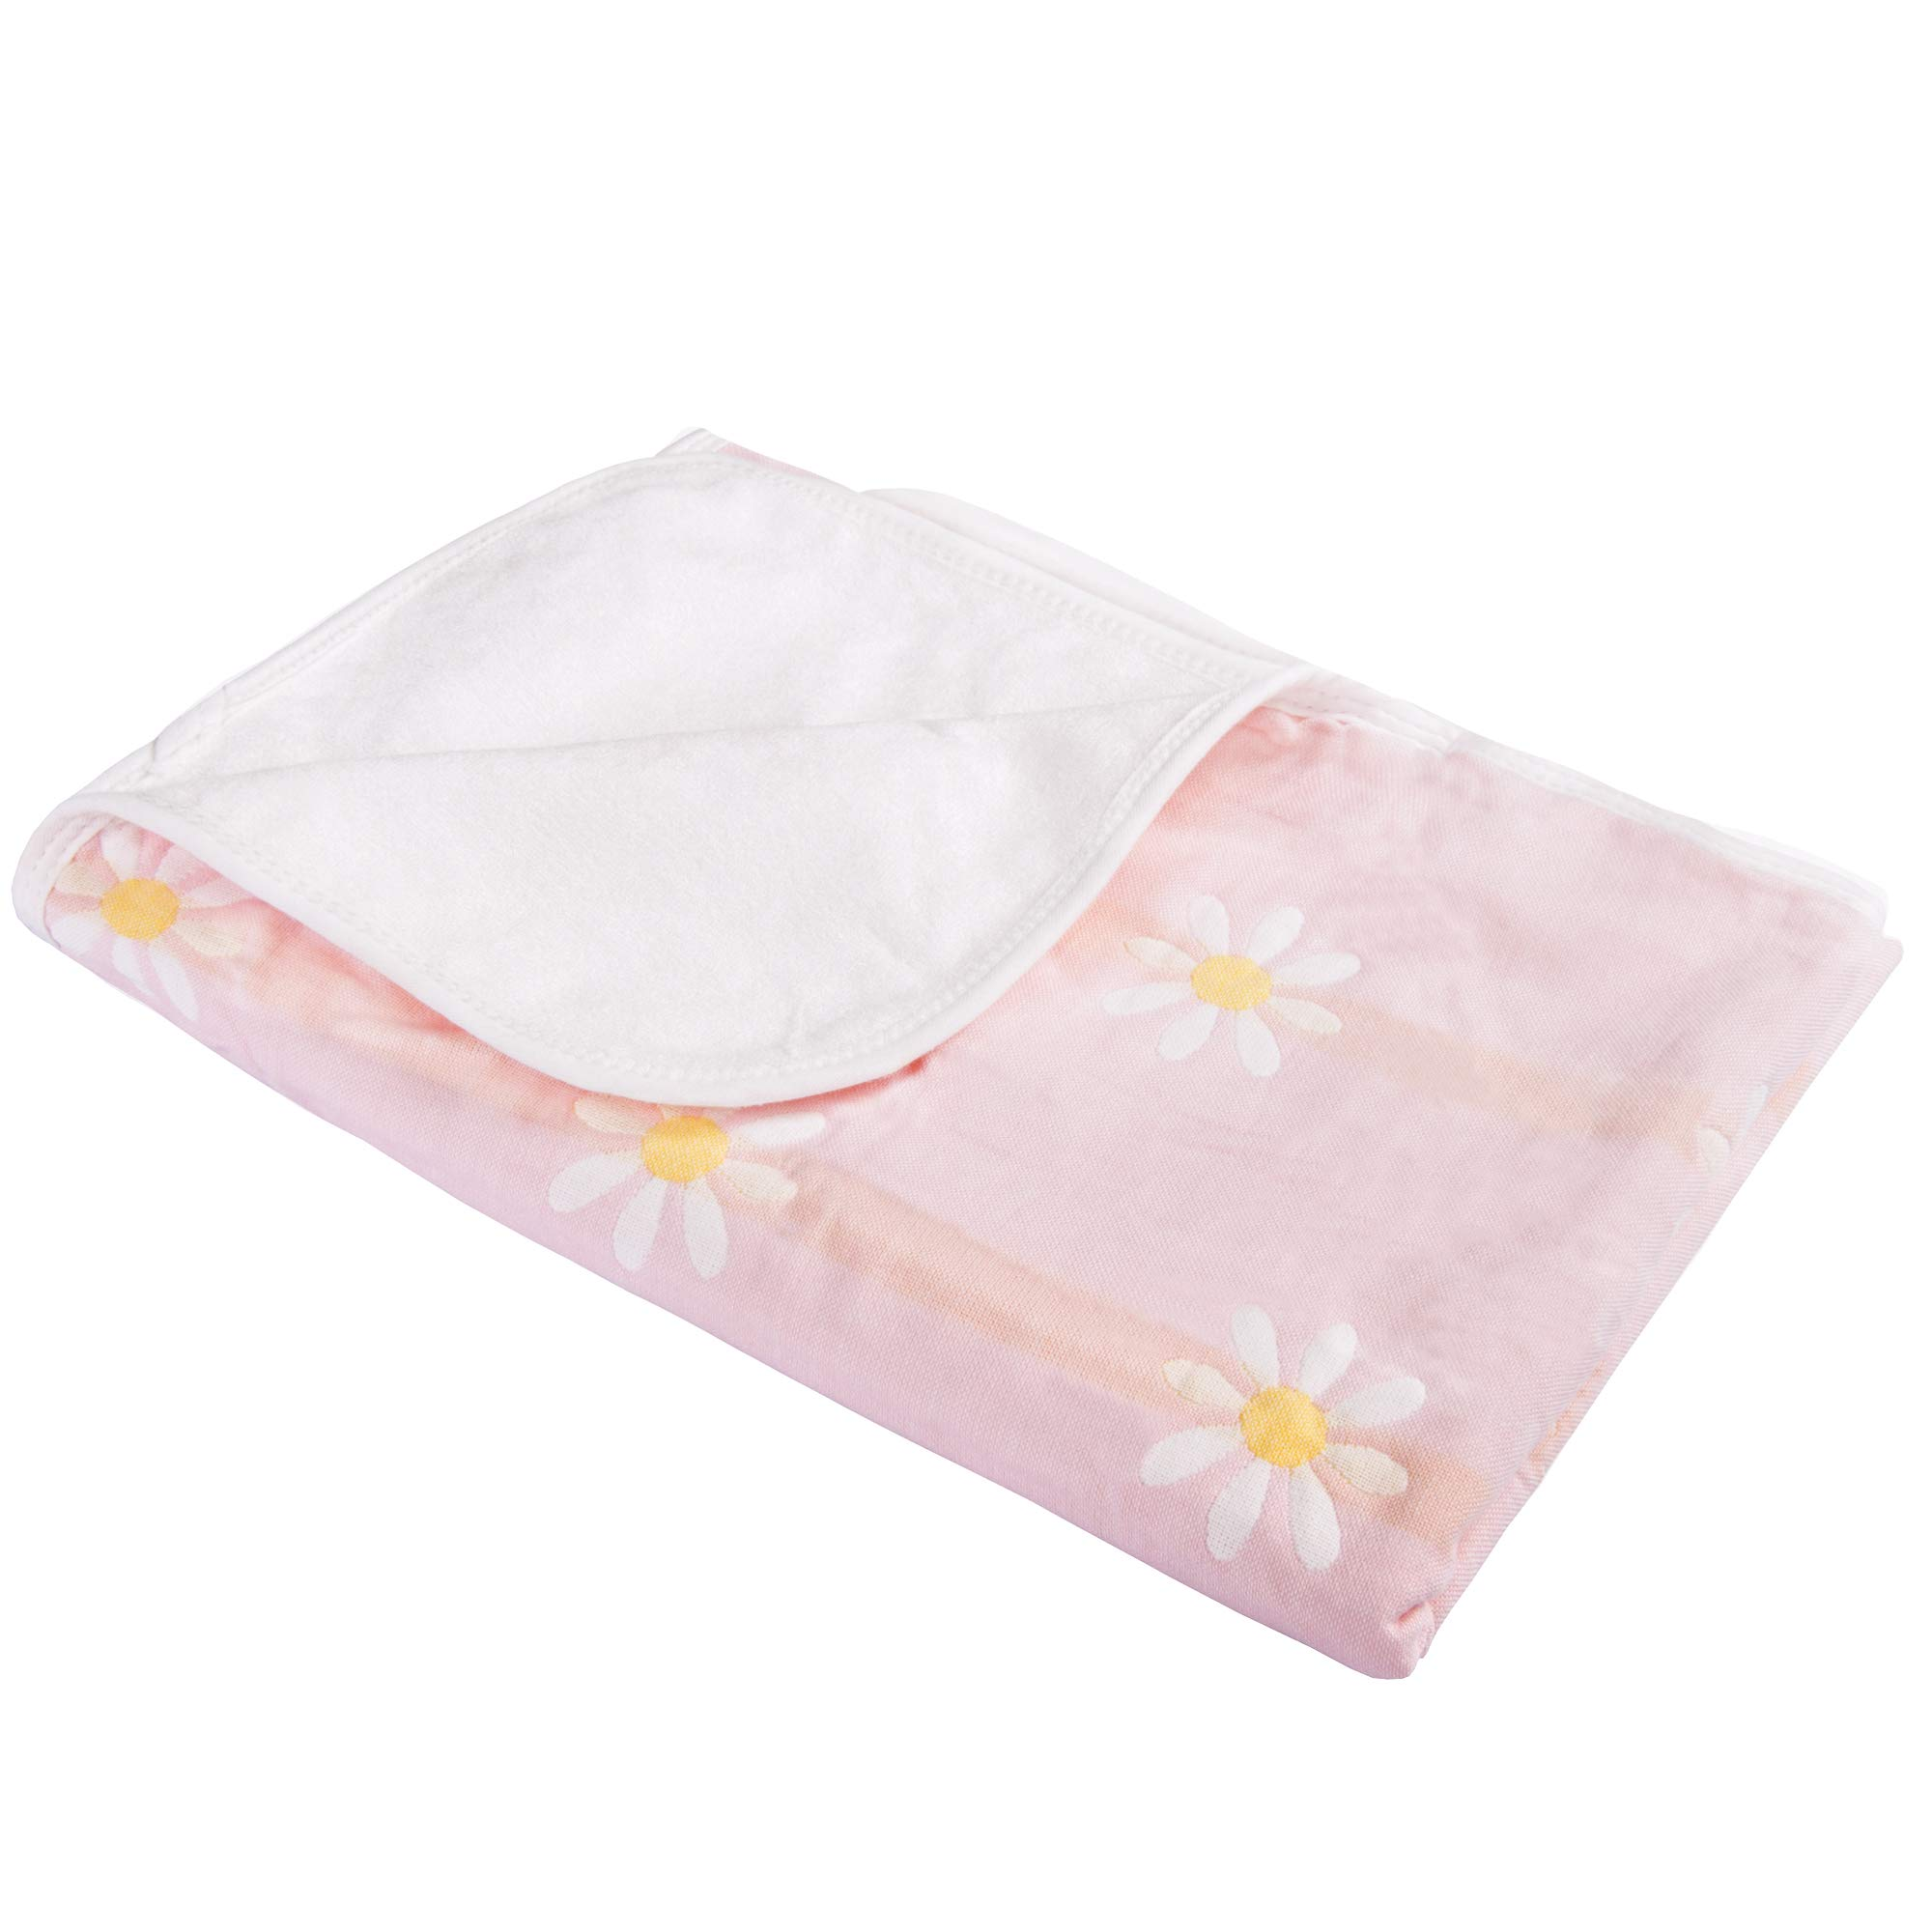 NTBAY Baby Crib Diaper Changing Pad Muslin Cotton Bamboo Fiber Breathable Waterproof Underpads Mattress Sheet Protector with Flower Pattern, Pink, 25''x 35''